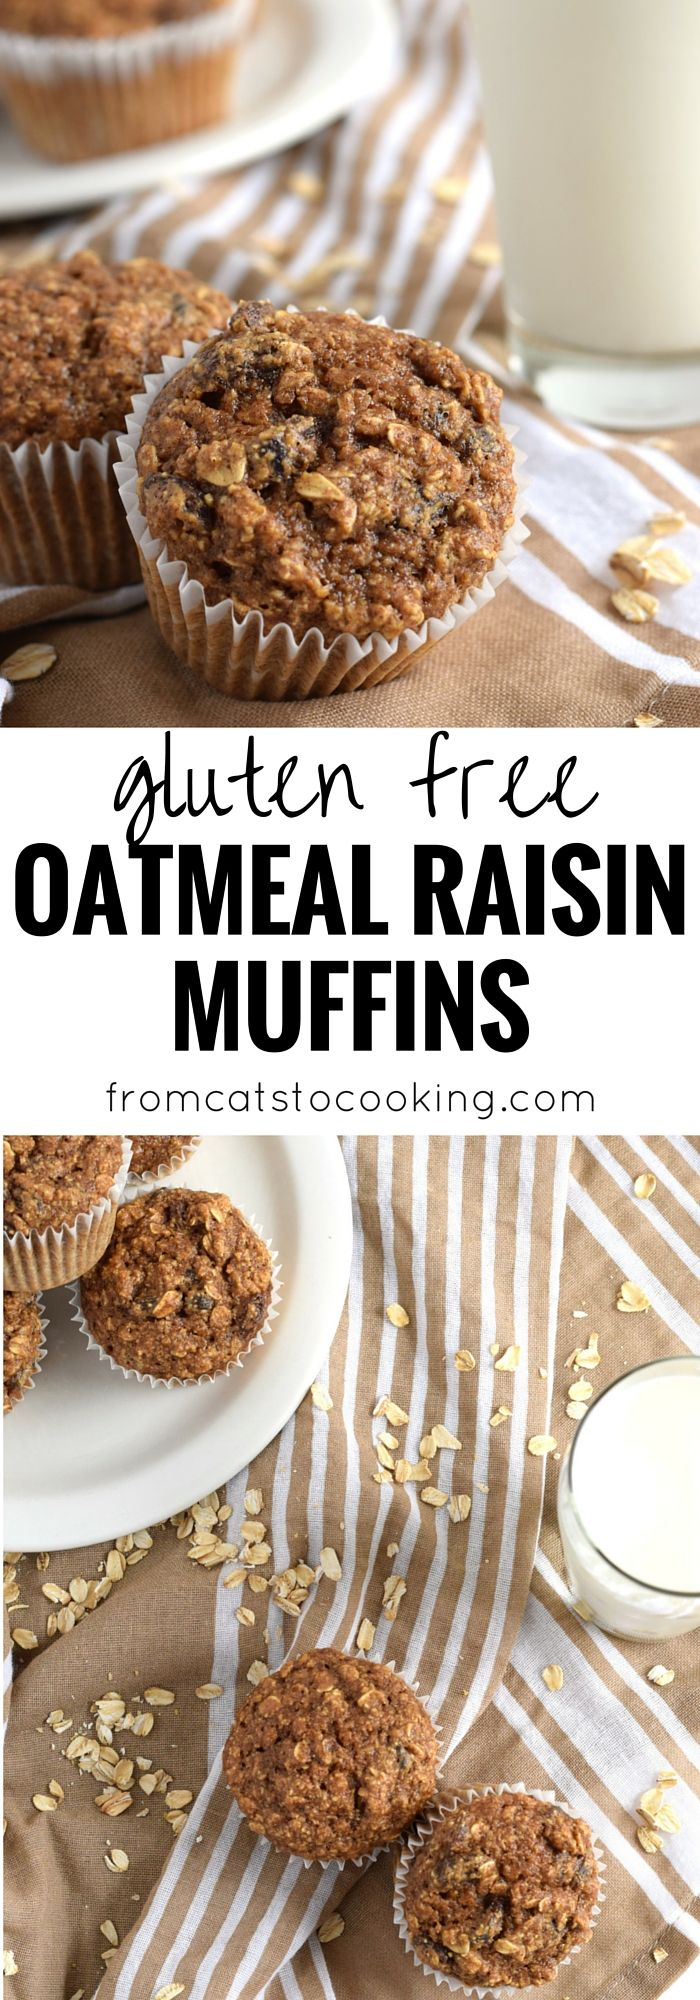 Made with rolled oats, raisins, unsweetened applesauce and almond butter, these Gluten Free Oatmeal Raisin Muffins are ready in only 30 minutes! // isabeleats.com